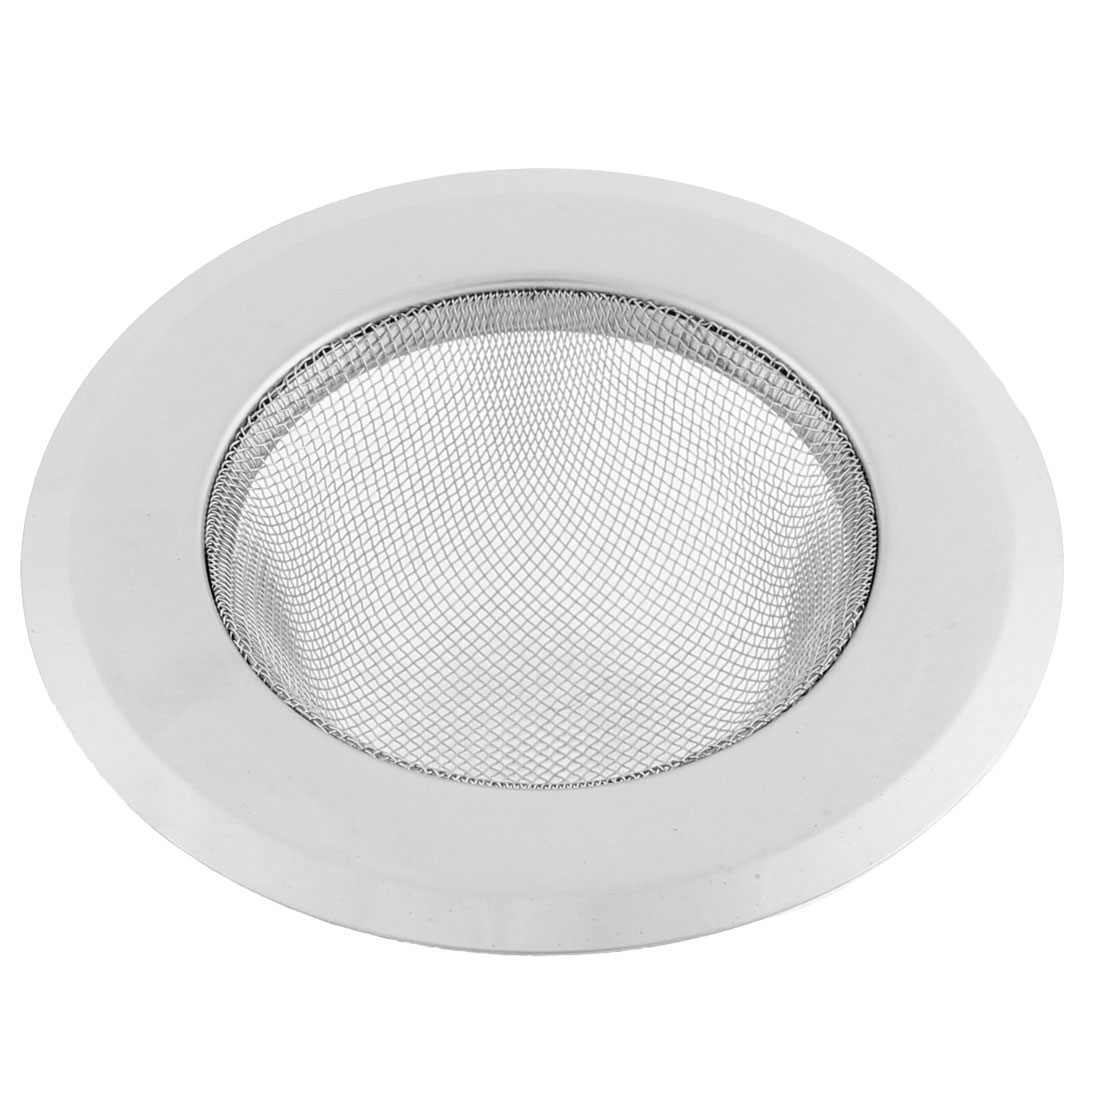 Home Kitchen Basin Sink Filter Mesh Strainer Stopper 11.3cm Outer Dia